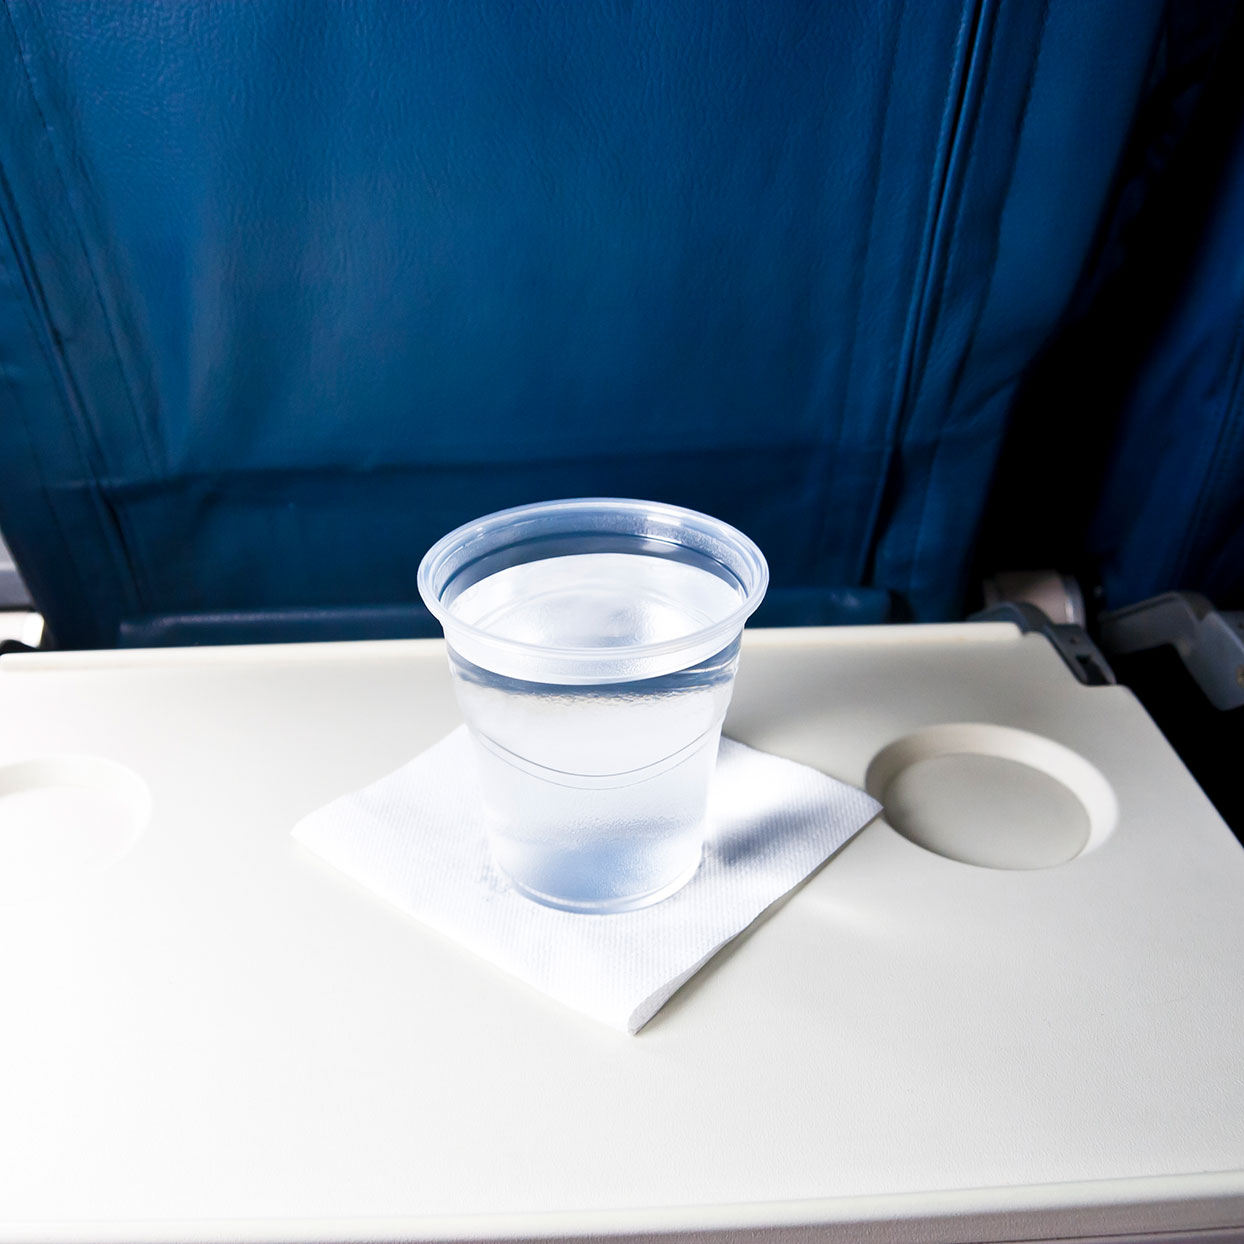 Water on Most U.S. Airlines Is Unsafe, Says Study: Avoid Coffee, Tea and Even Washing Your Hands